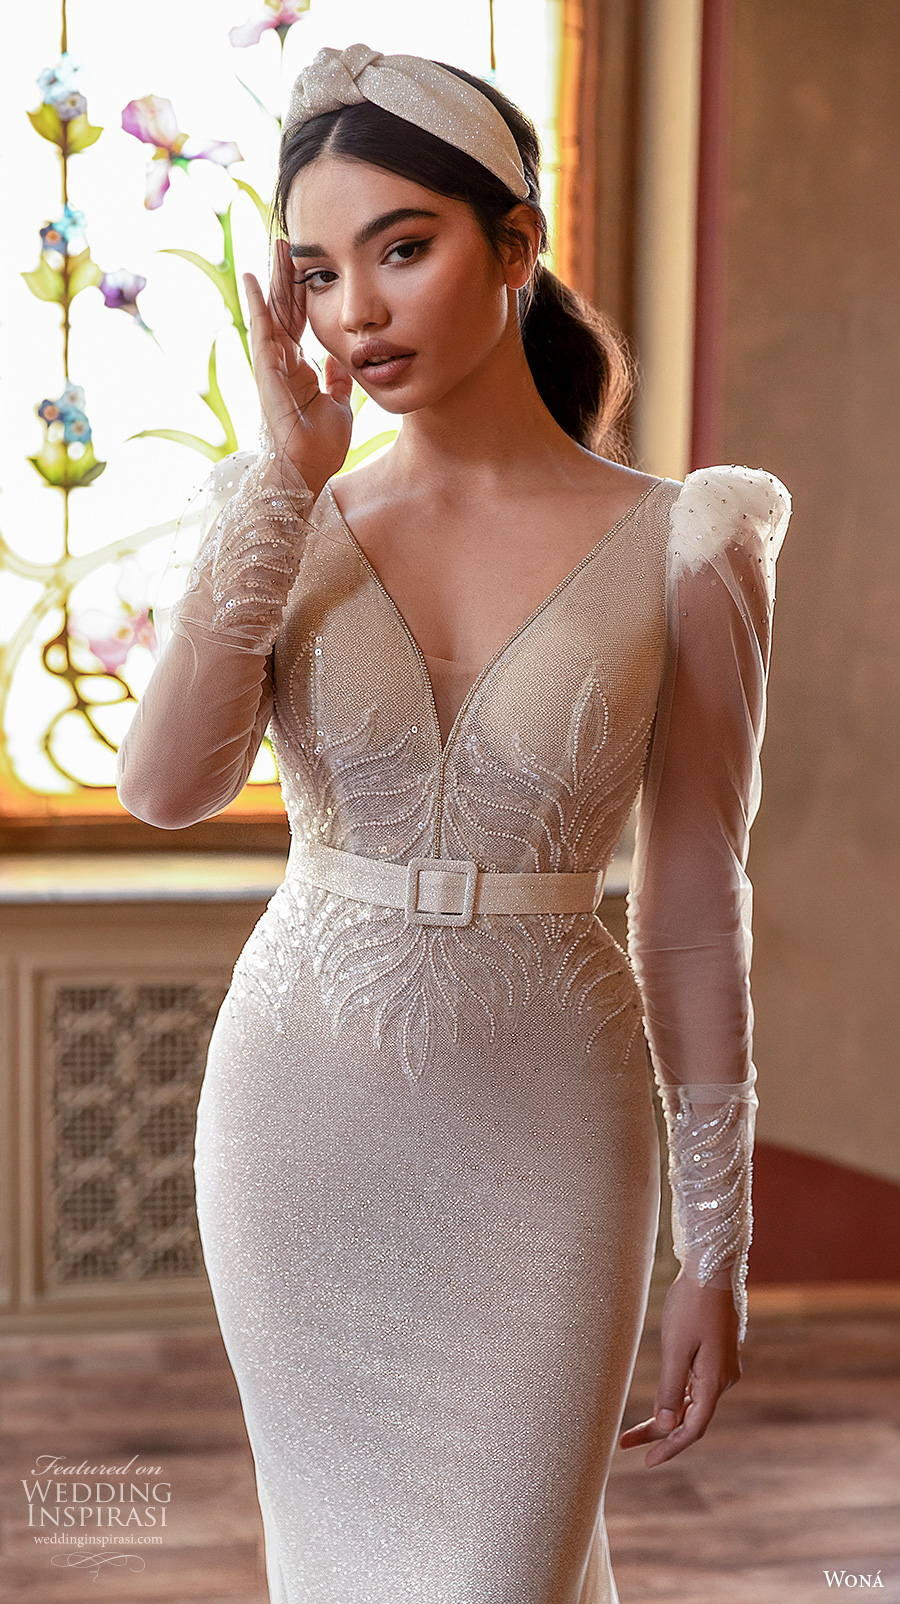 wona concept 2021 romance bridal long sleeves v neck lightly embellished bodice glamorous elgan fit and flare wedding dress keyhole back chapel train (8) zv